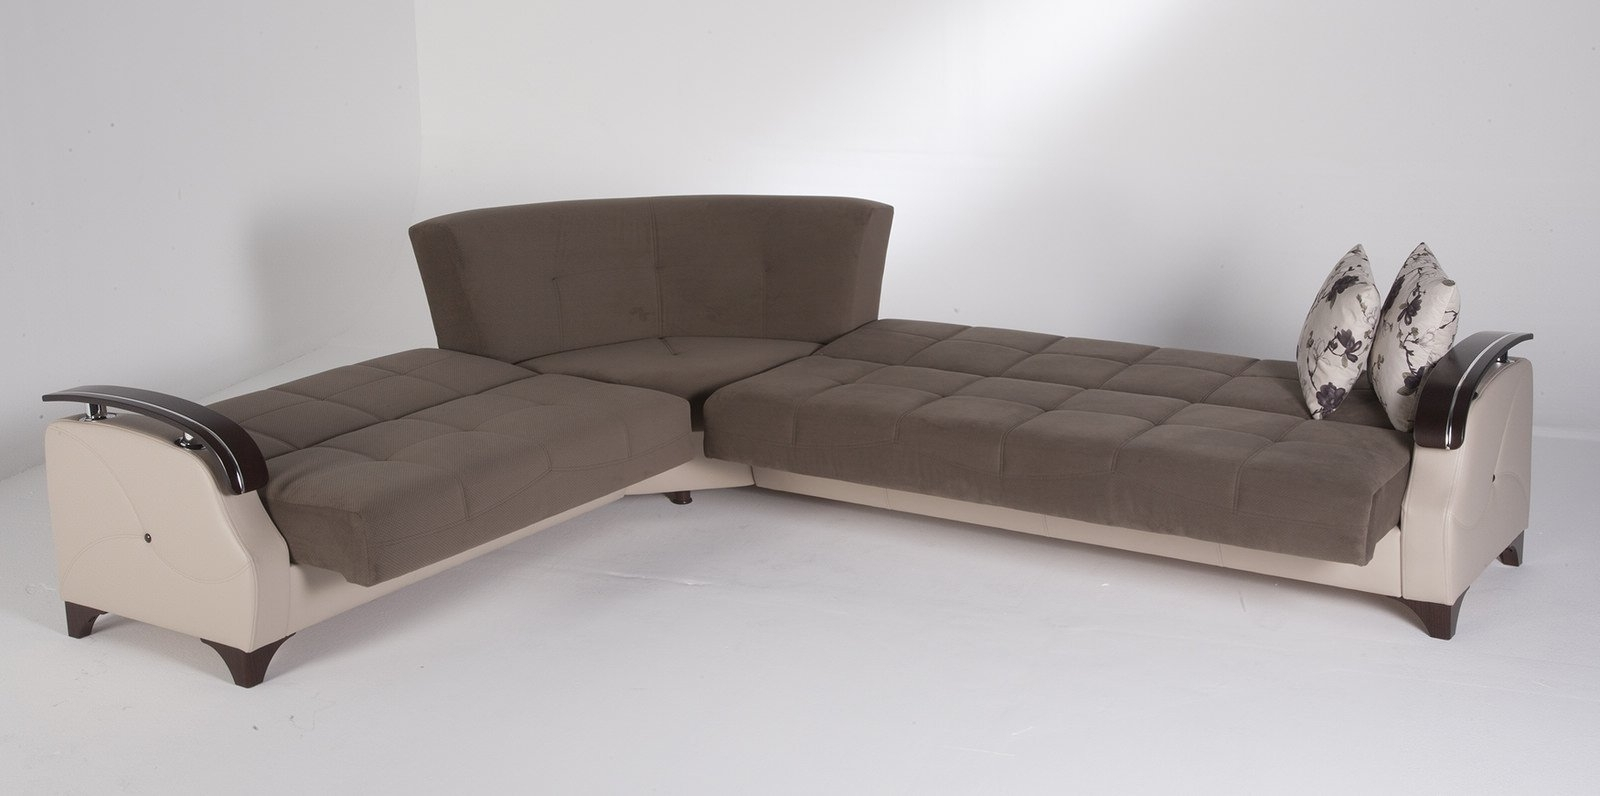 Trento Selen Brown Sectional Sofasunset Pertaining To Famous Sectional Sofas With Queen Size Sleeper (View 18 of 20)